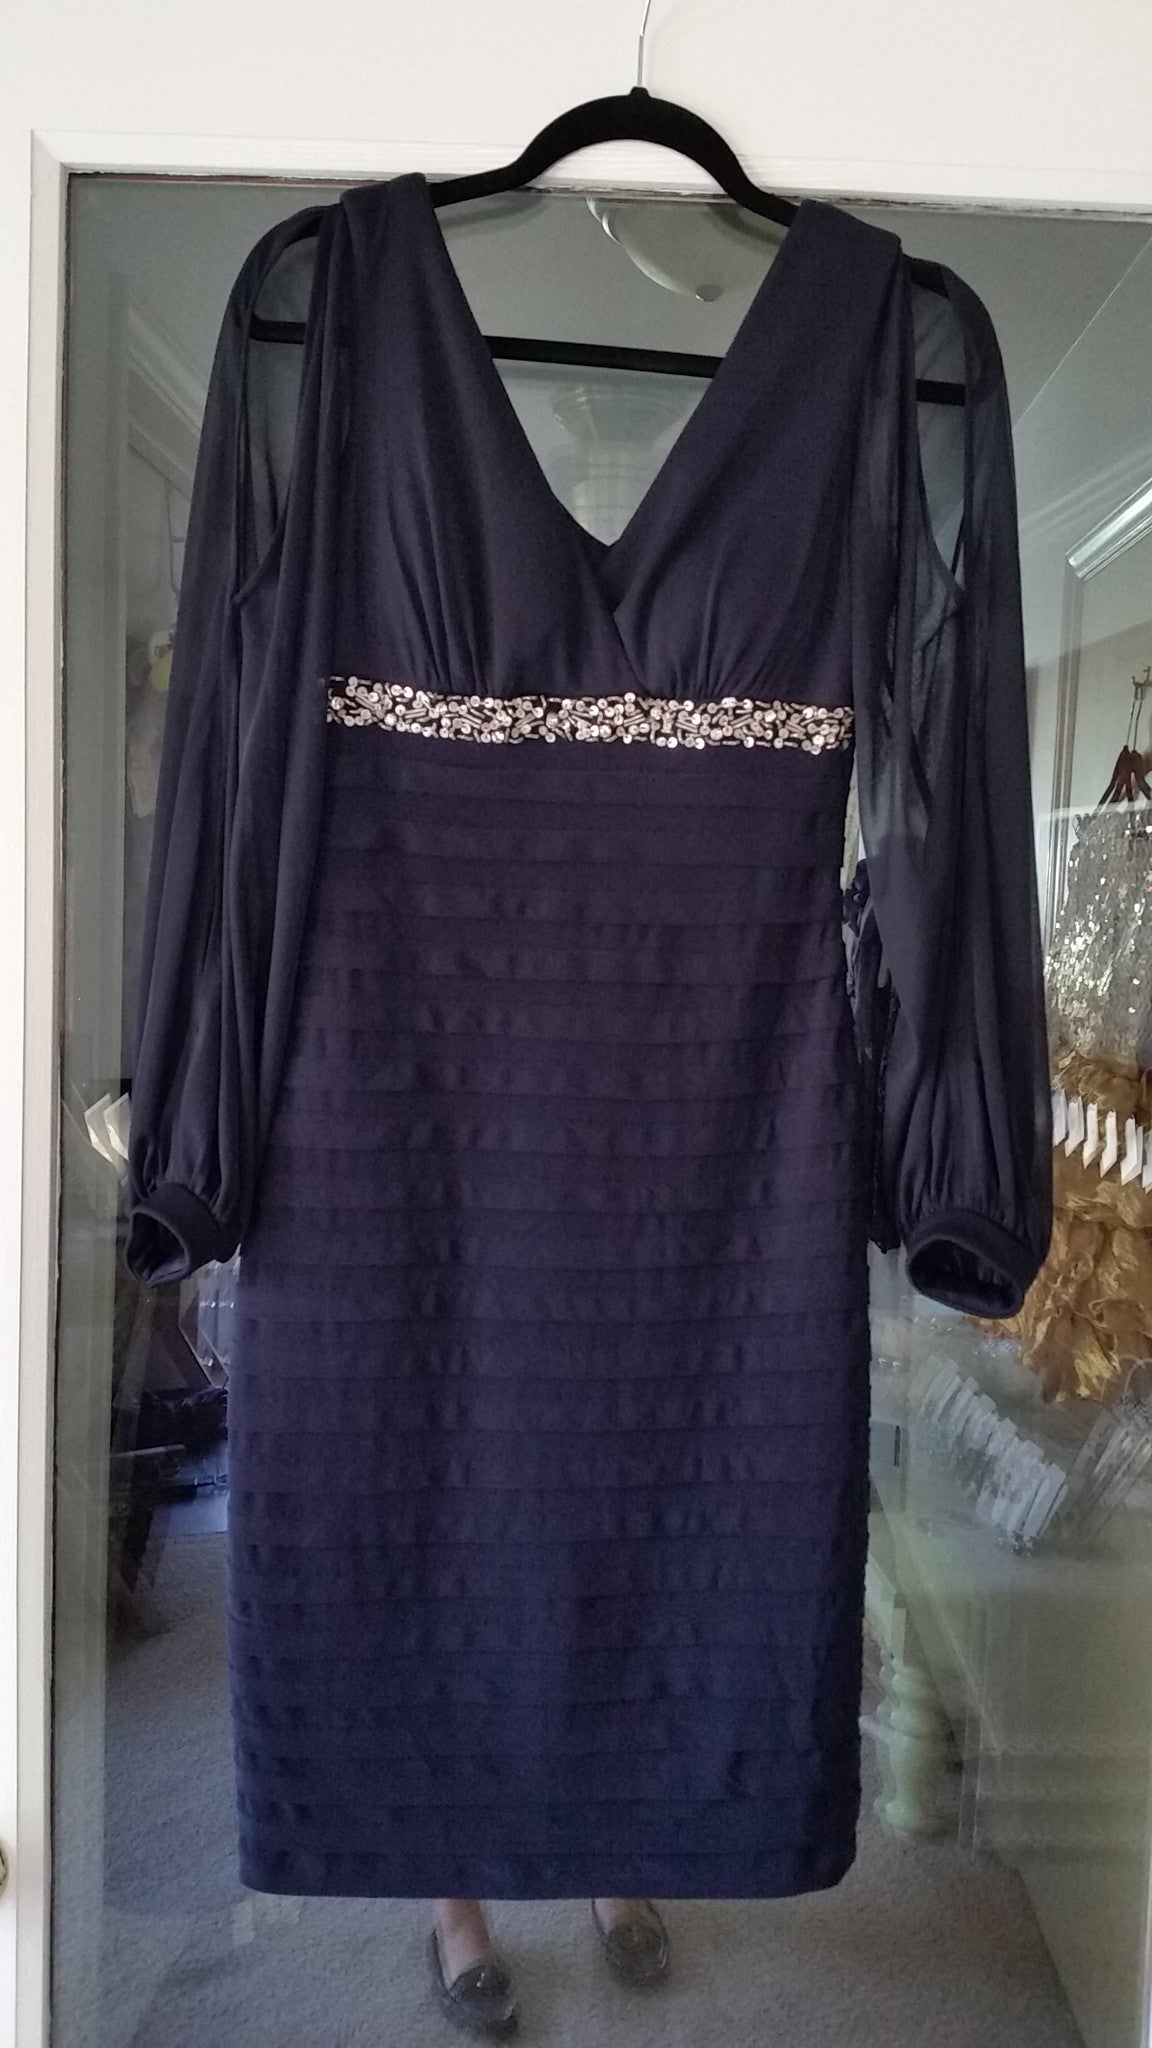 RETURNED ON 6/29/18. Blue Mini Long Sleeve V-Neck Dress by Betsy & Adam, Size 4